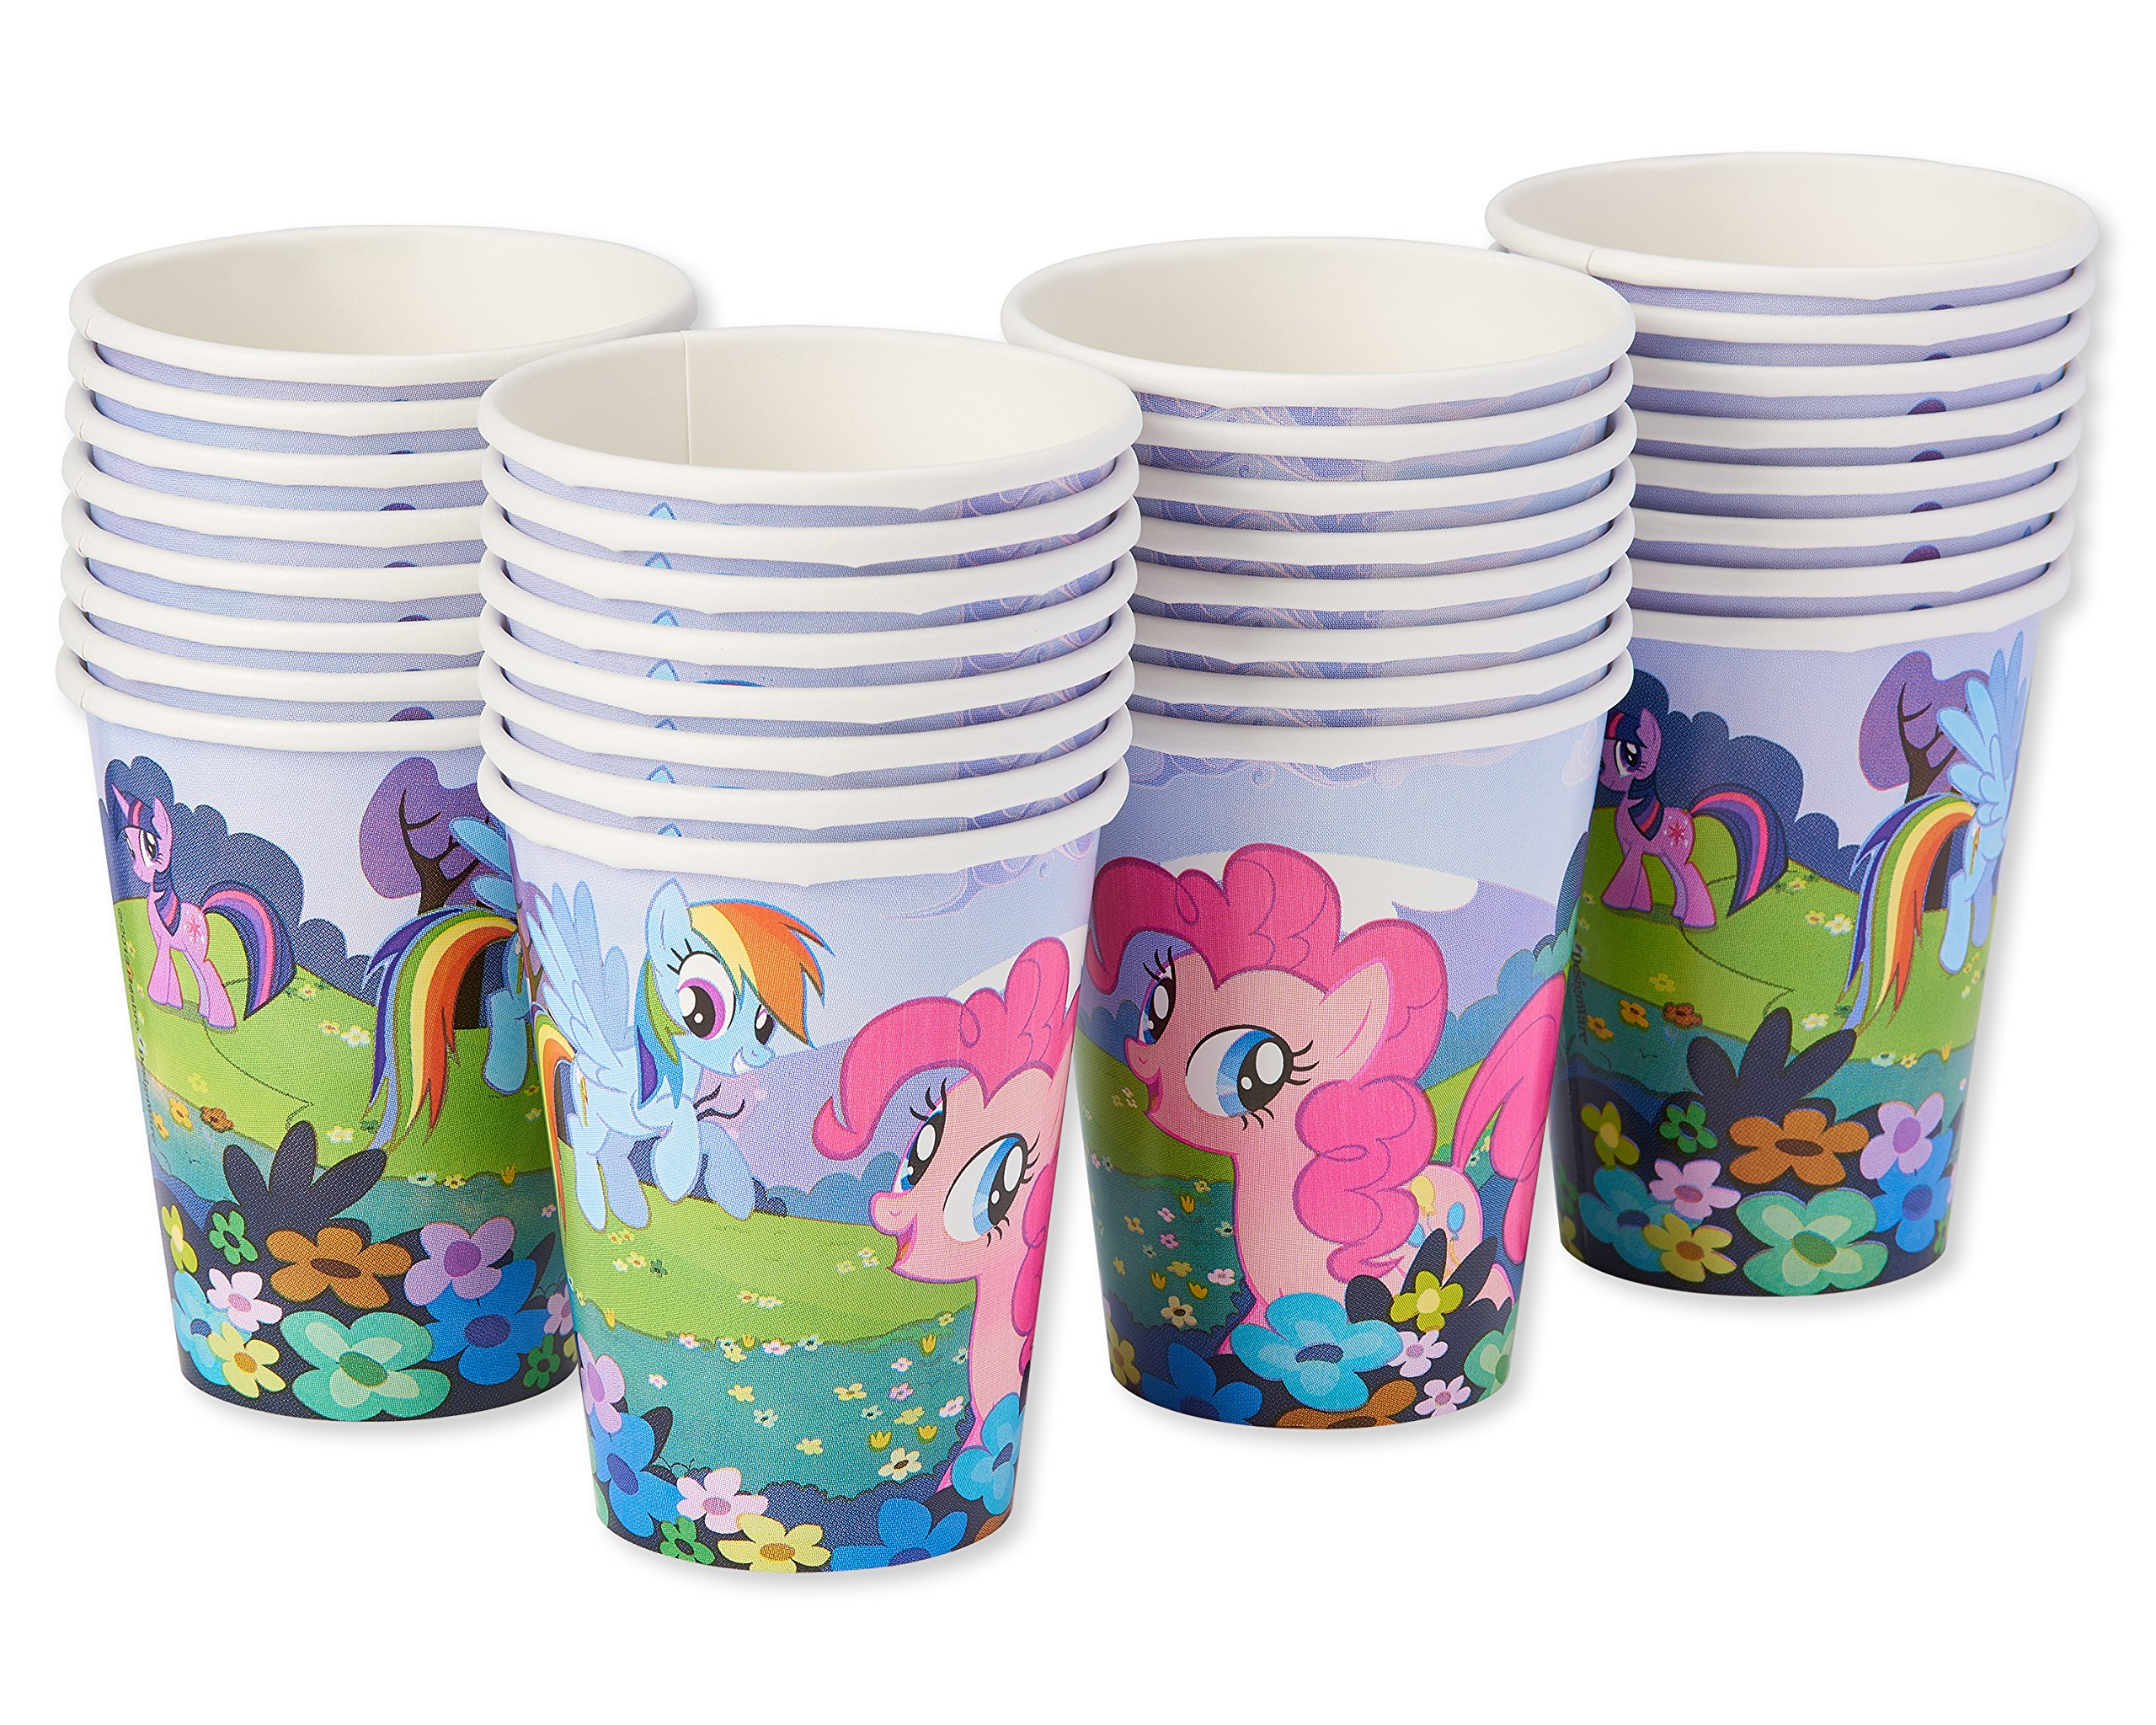 American Greetings My Little Pony Paper Party Cups, 32-Count, Paper Cups by American Greetings